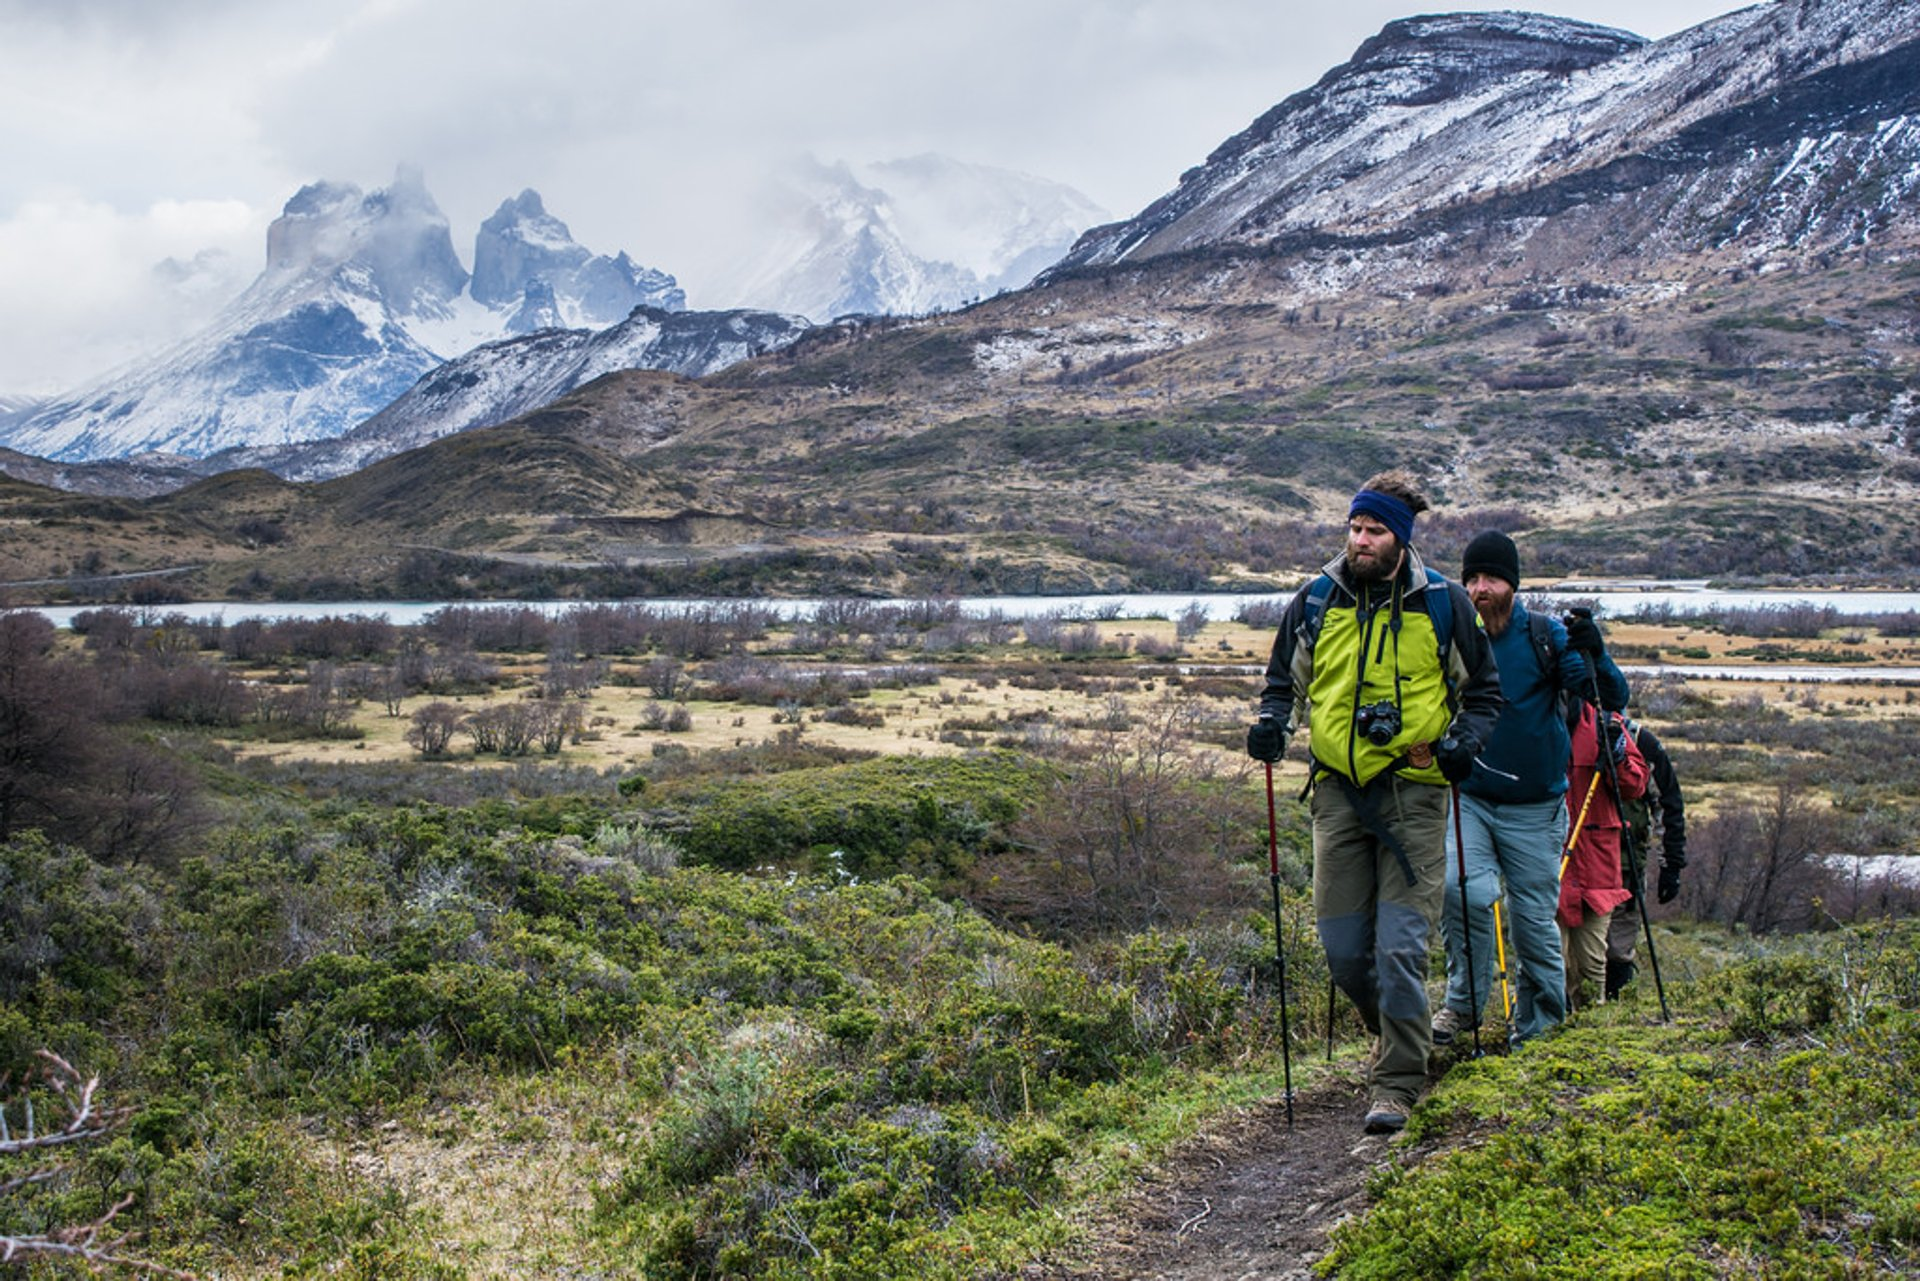 Hiking in Patagonia in Chile 2019 - Best Time